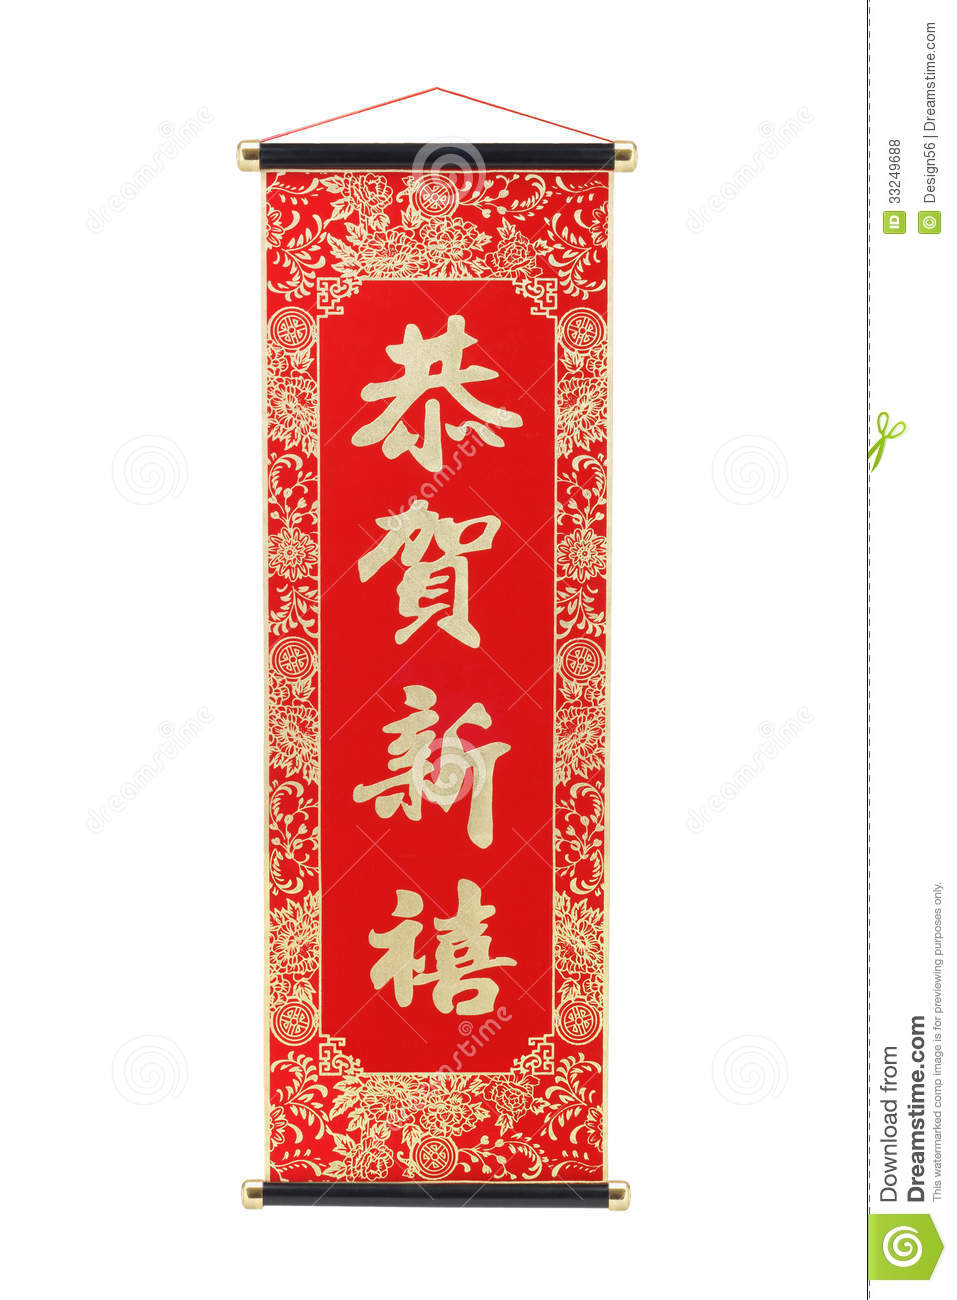 Chinese New Year Scroll Royalty Free Stock Photos - Image: 33249688